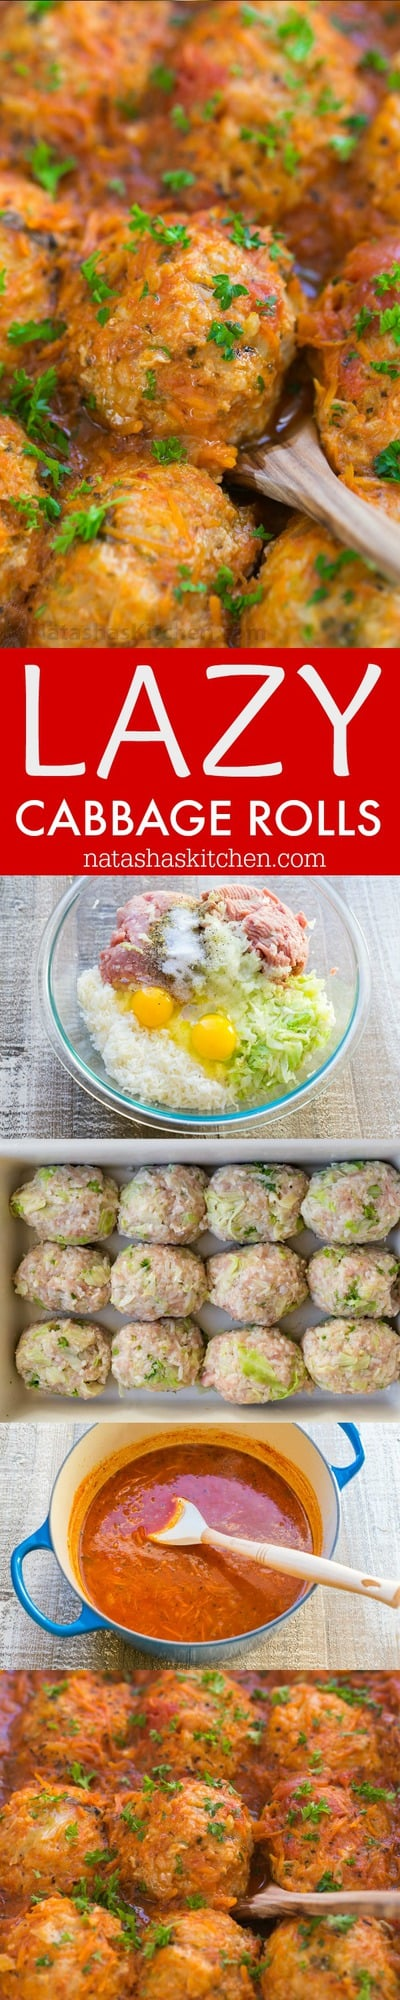 This lazy cabbage rolls recipe gives you the same great flavors of stuffed cabbage with much less effort. Lazy cabbage rolls are so juicy and comforting | natashaskitchen.com